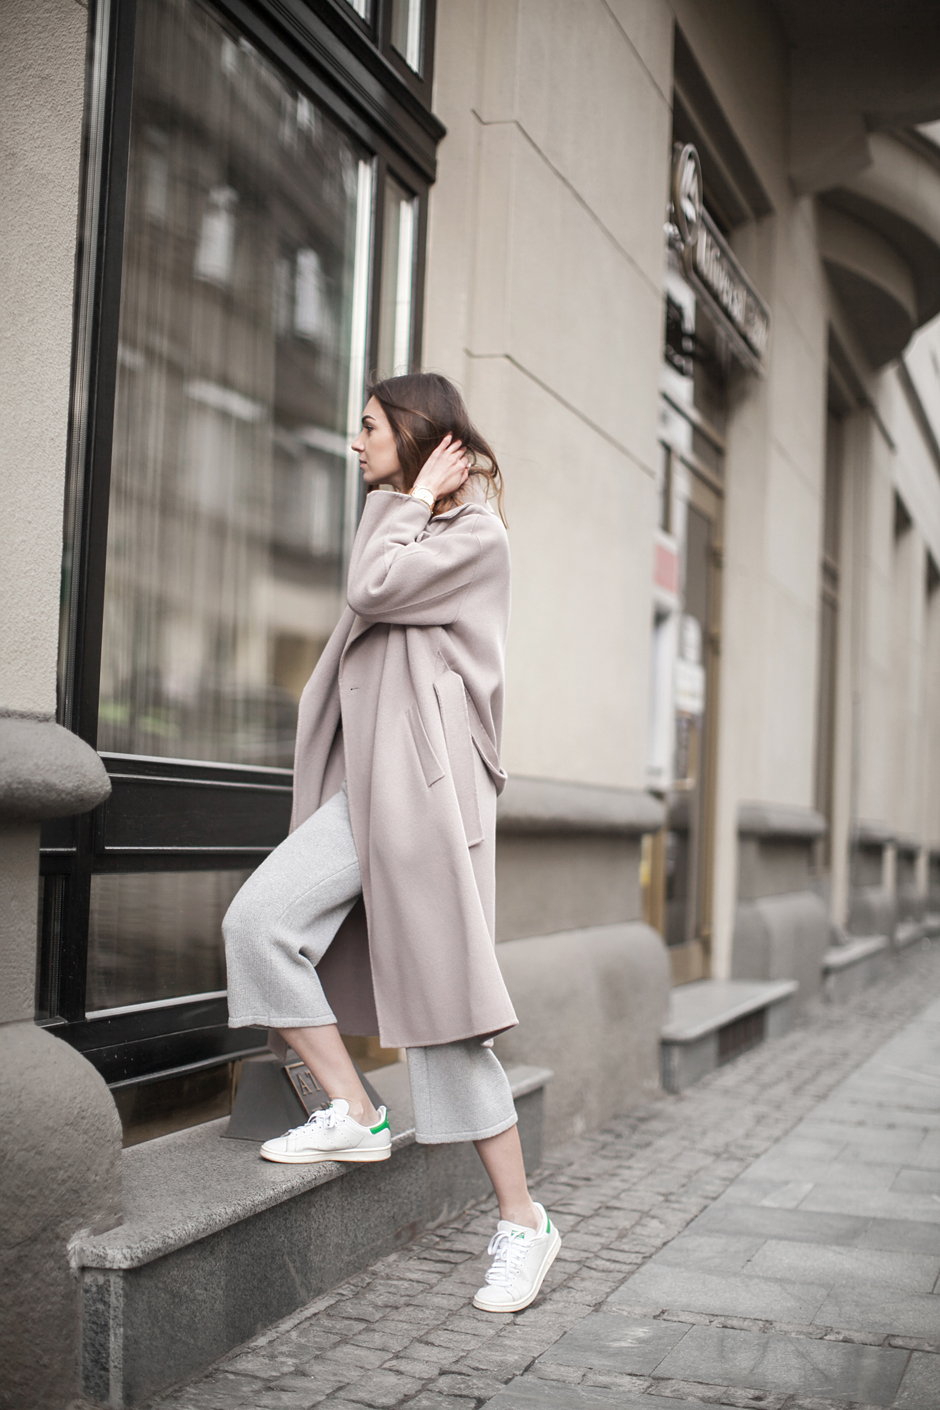 how-to-wear-pastel-pink-coat-outfit-ideas